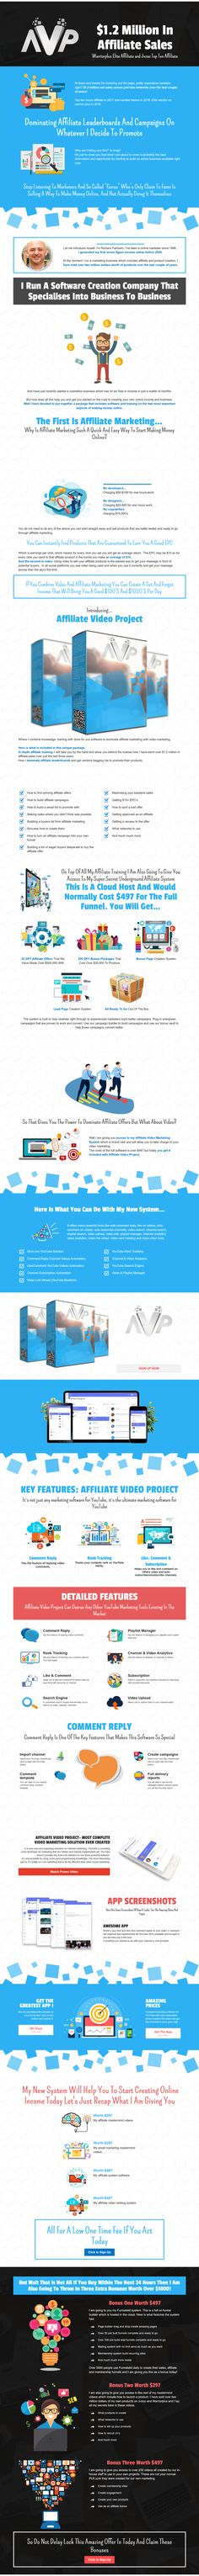 Affiliate Video Project is In depth affiliate training + Software. Richard will take you by the hand and show you behind the scenes how he has earn over $1.2 million in affiliate sales over just the last three years The post Affiliate Video Project appeared first on DiscountSAAS. Marketing Software, Internet Marketing, Training Software, Video Project, Seo Tools, Online Business, Behind The Scenes, Popular, Projects